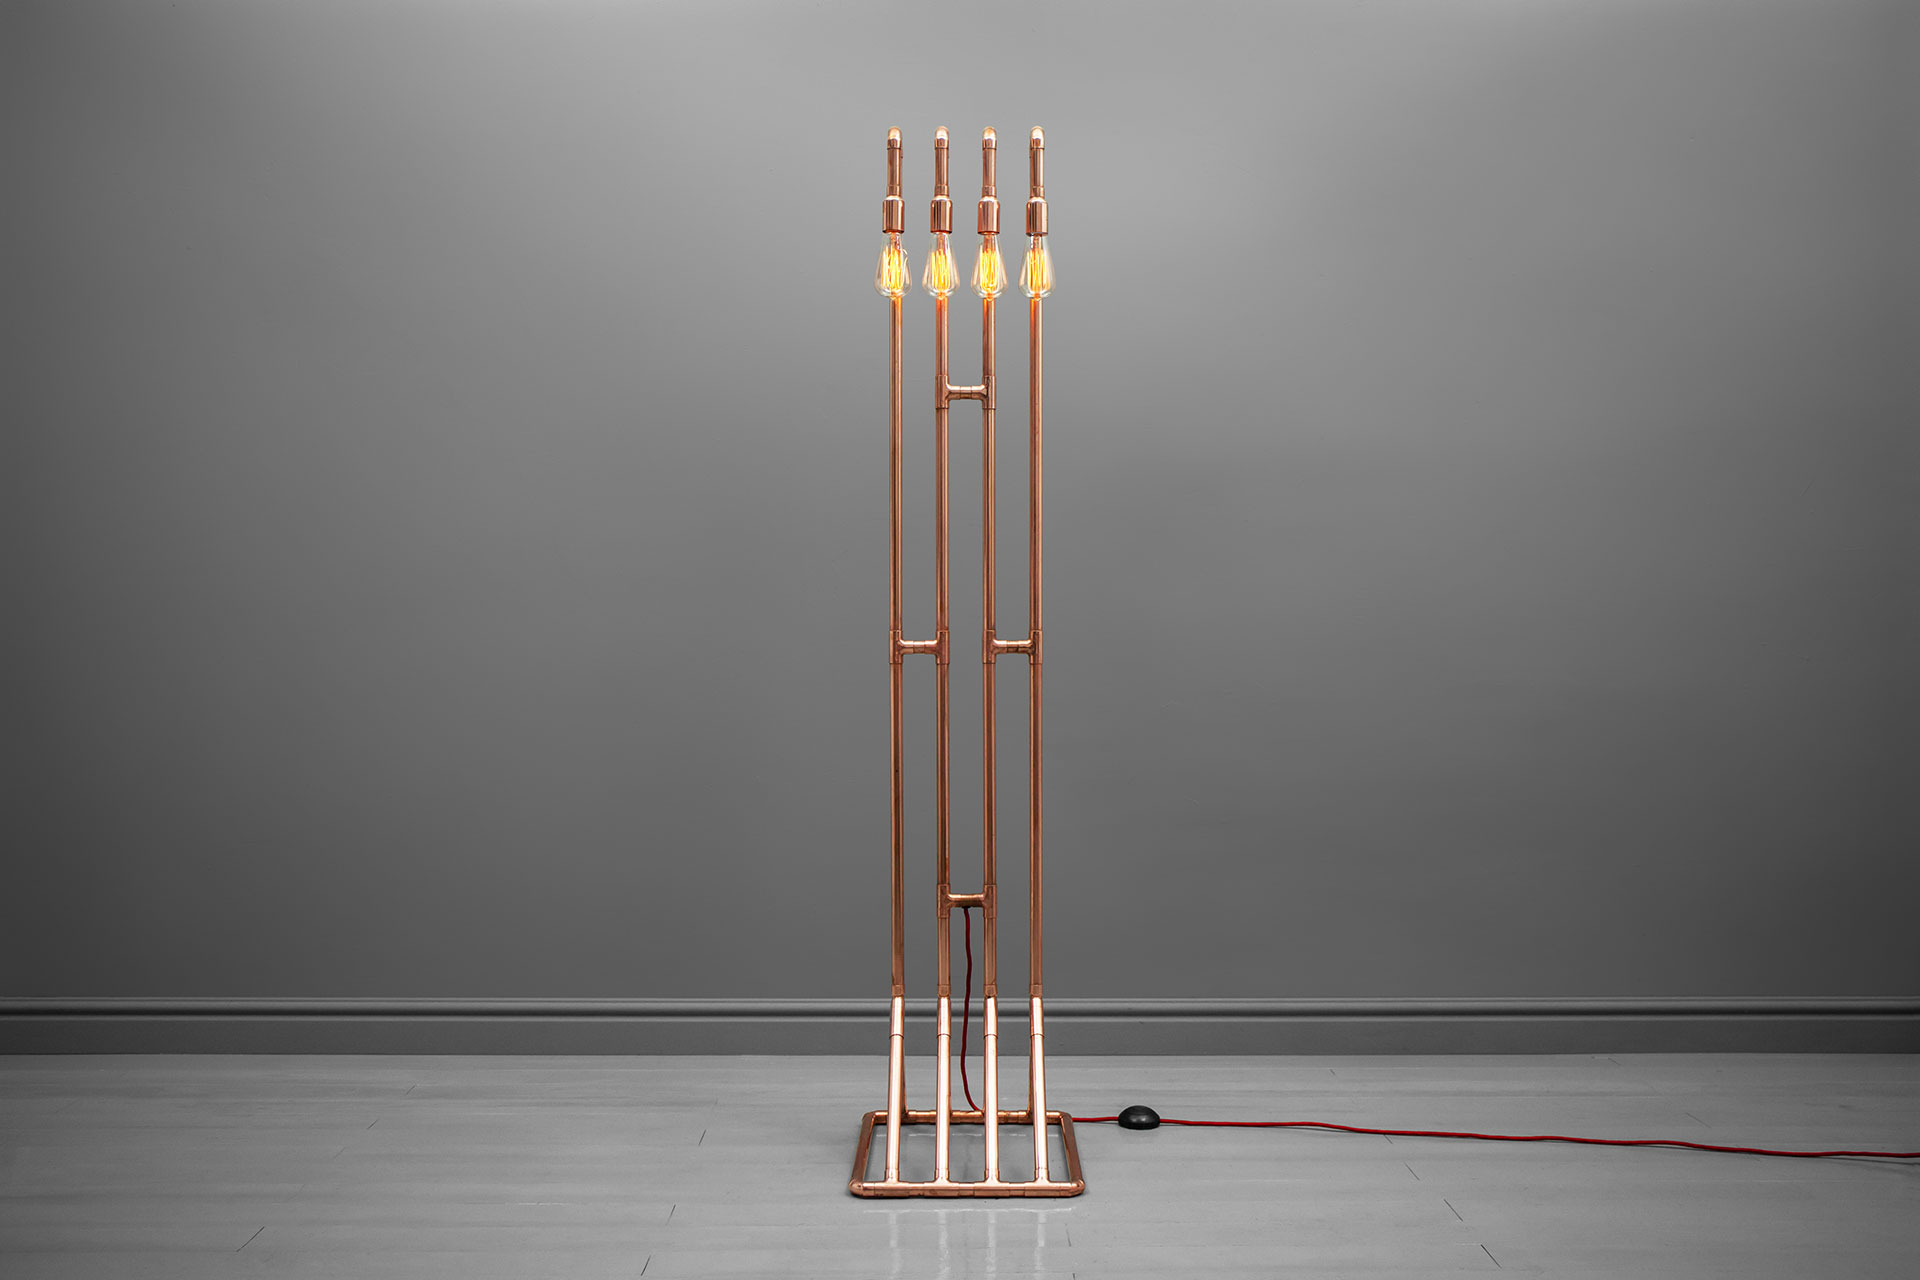 4-lights floor lamp with retro bulbs inspired by industrial design